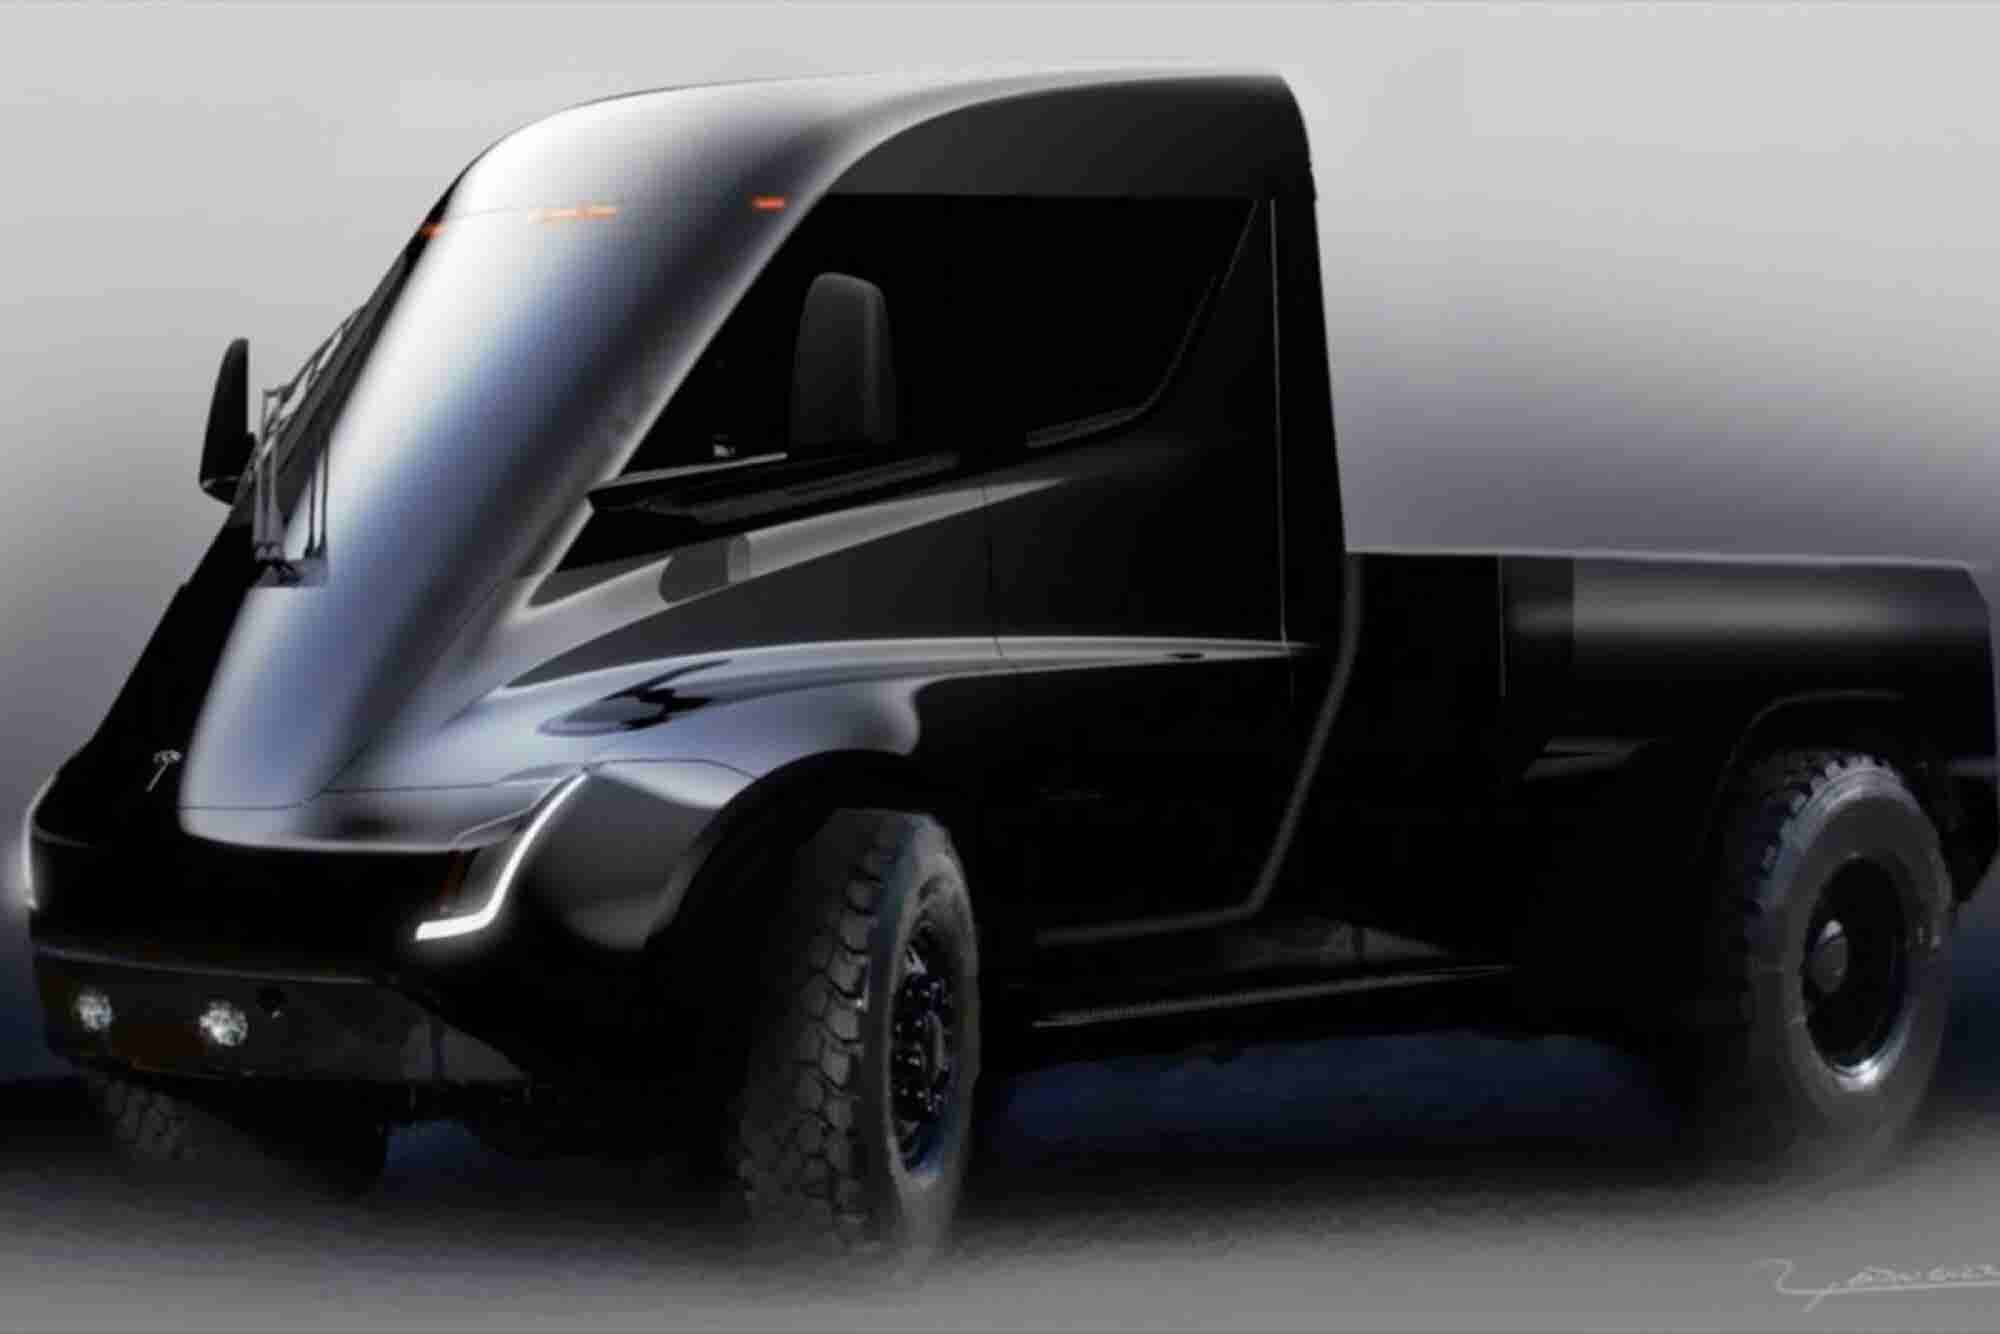 Elon Musk Vows to Build Tesla Pickup Truck 'Right After' Model Y